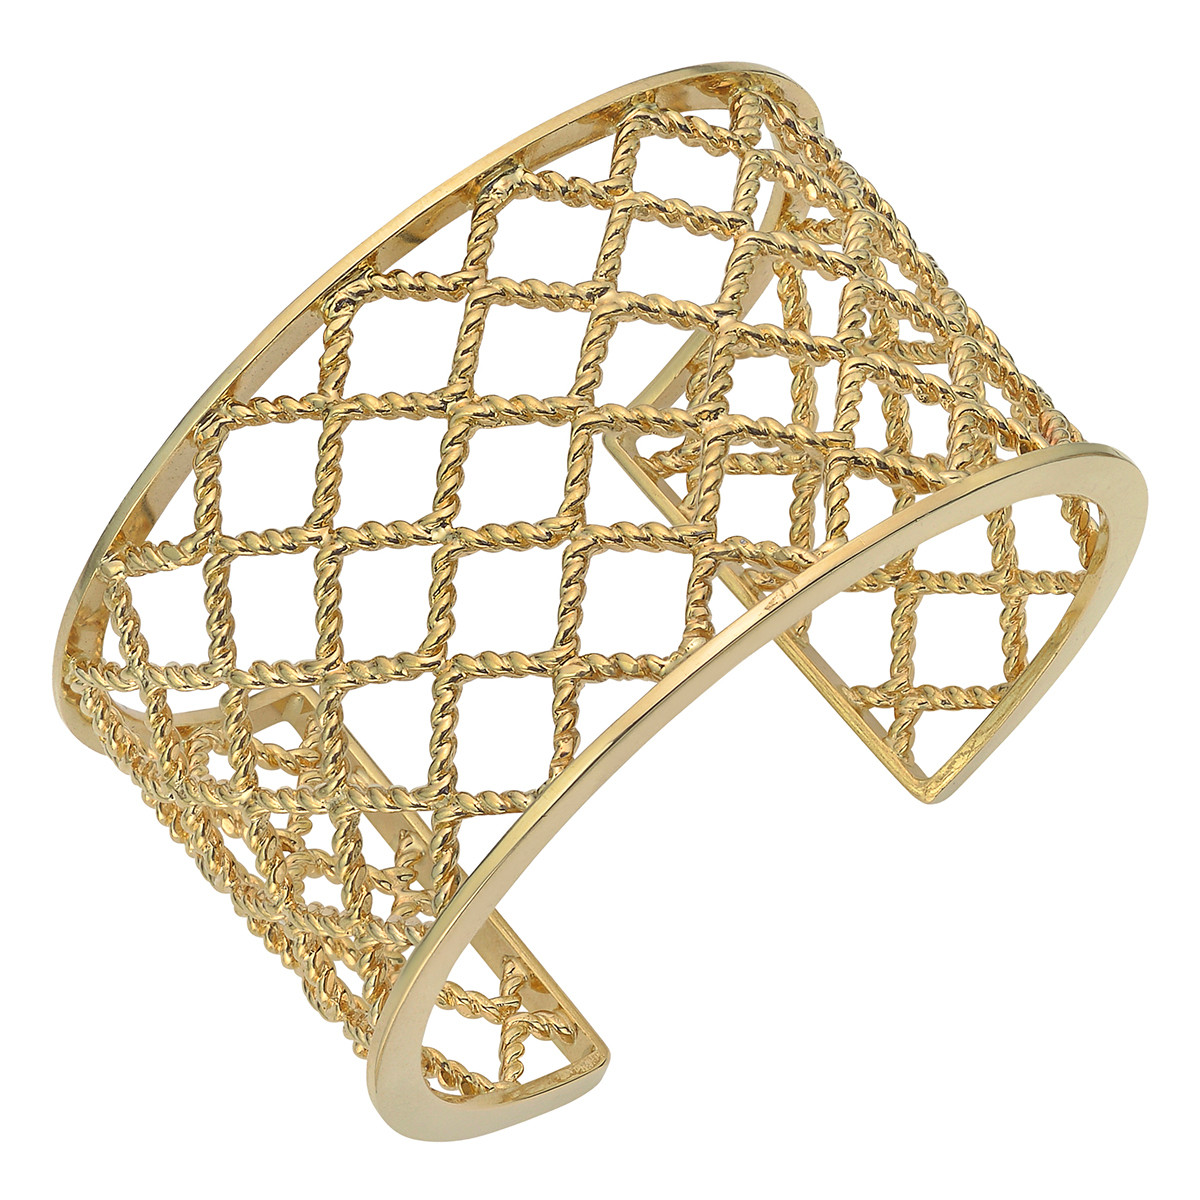 18k Yellow Gold Lattice Cuff Bracelet